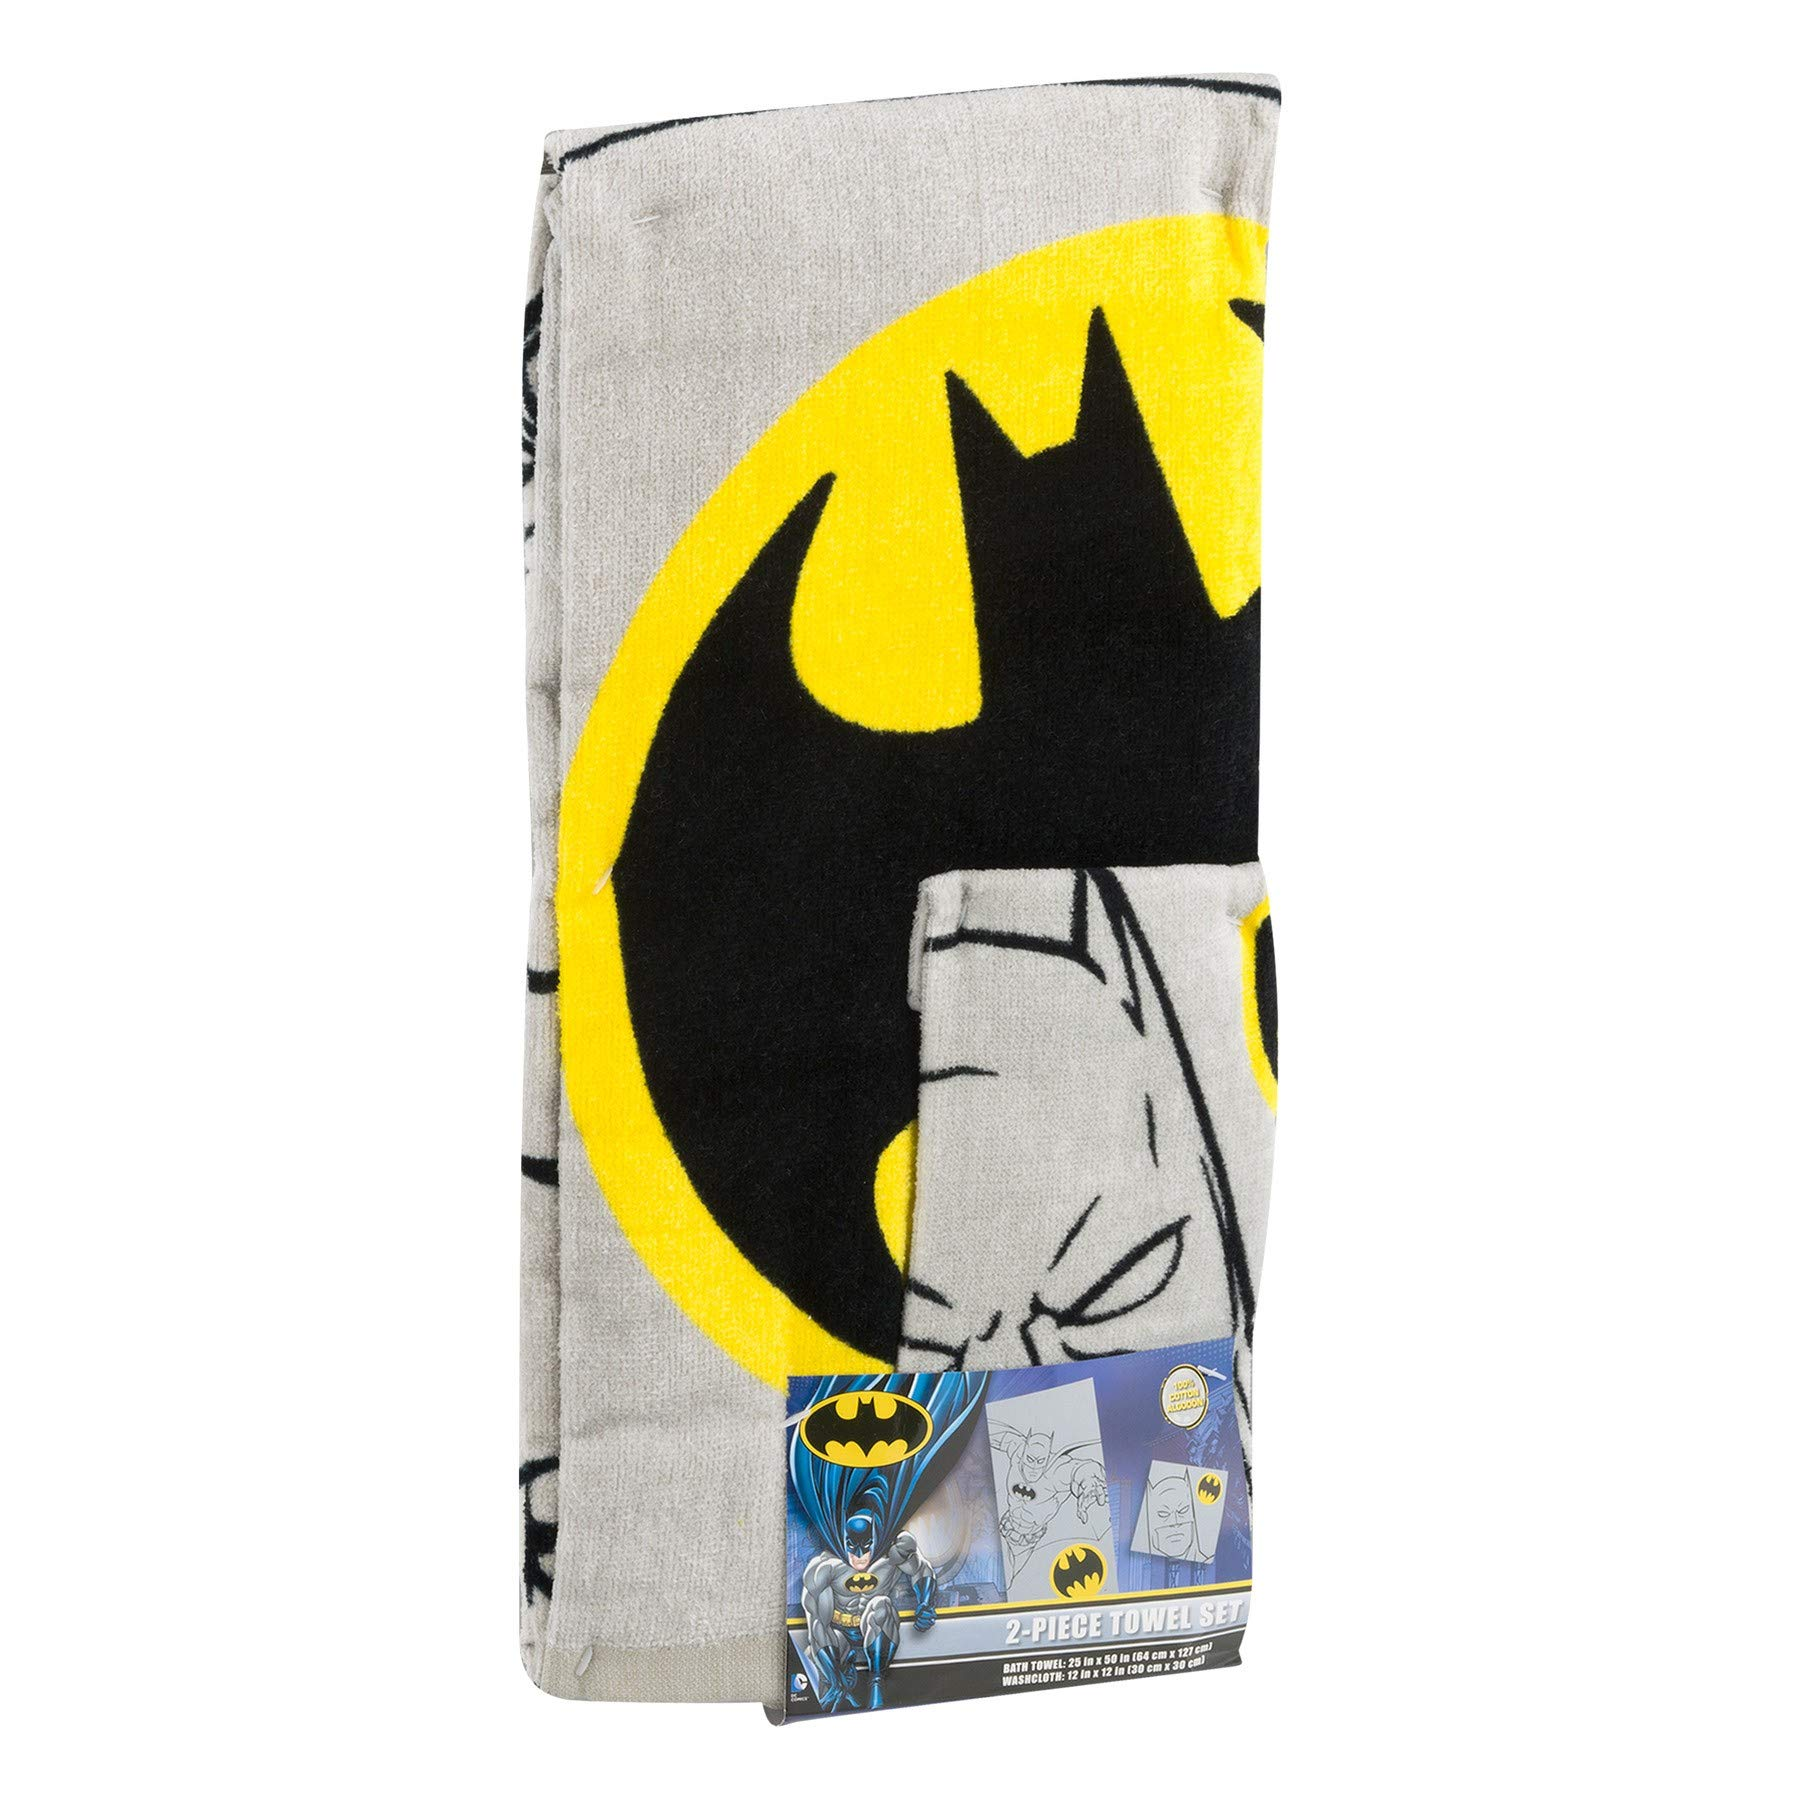 Kids Warehouse DC Comics Batman 2 Piece Bath Wash Set - Includes Bath Towel and Washcloth - 100% Cotton